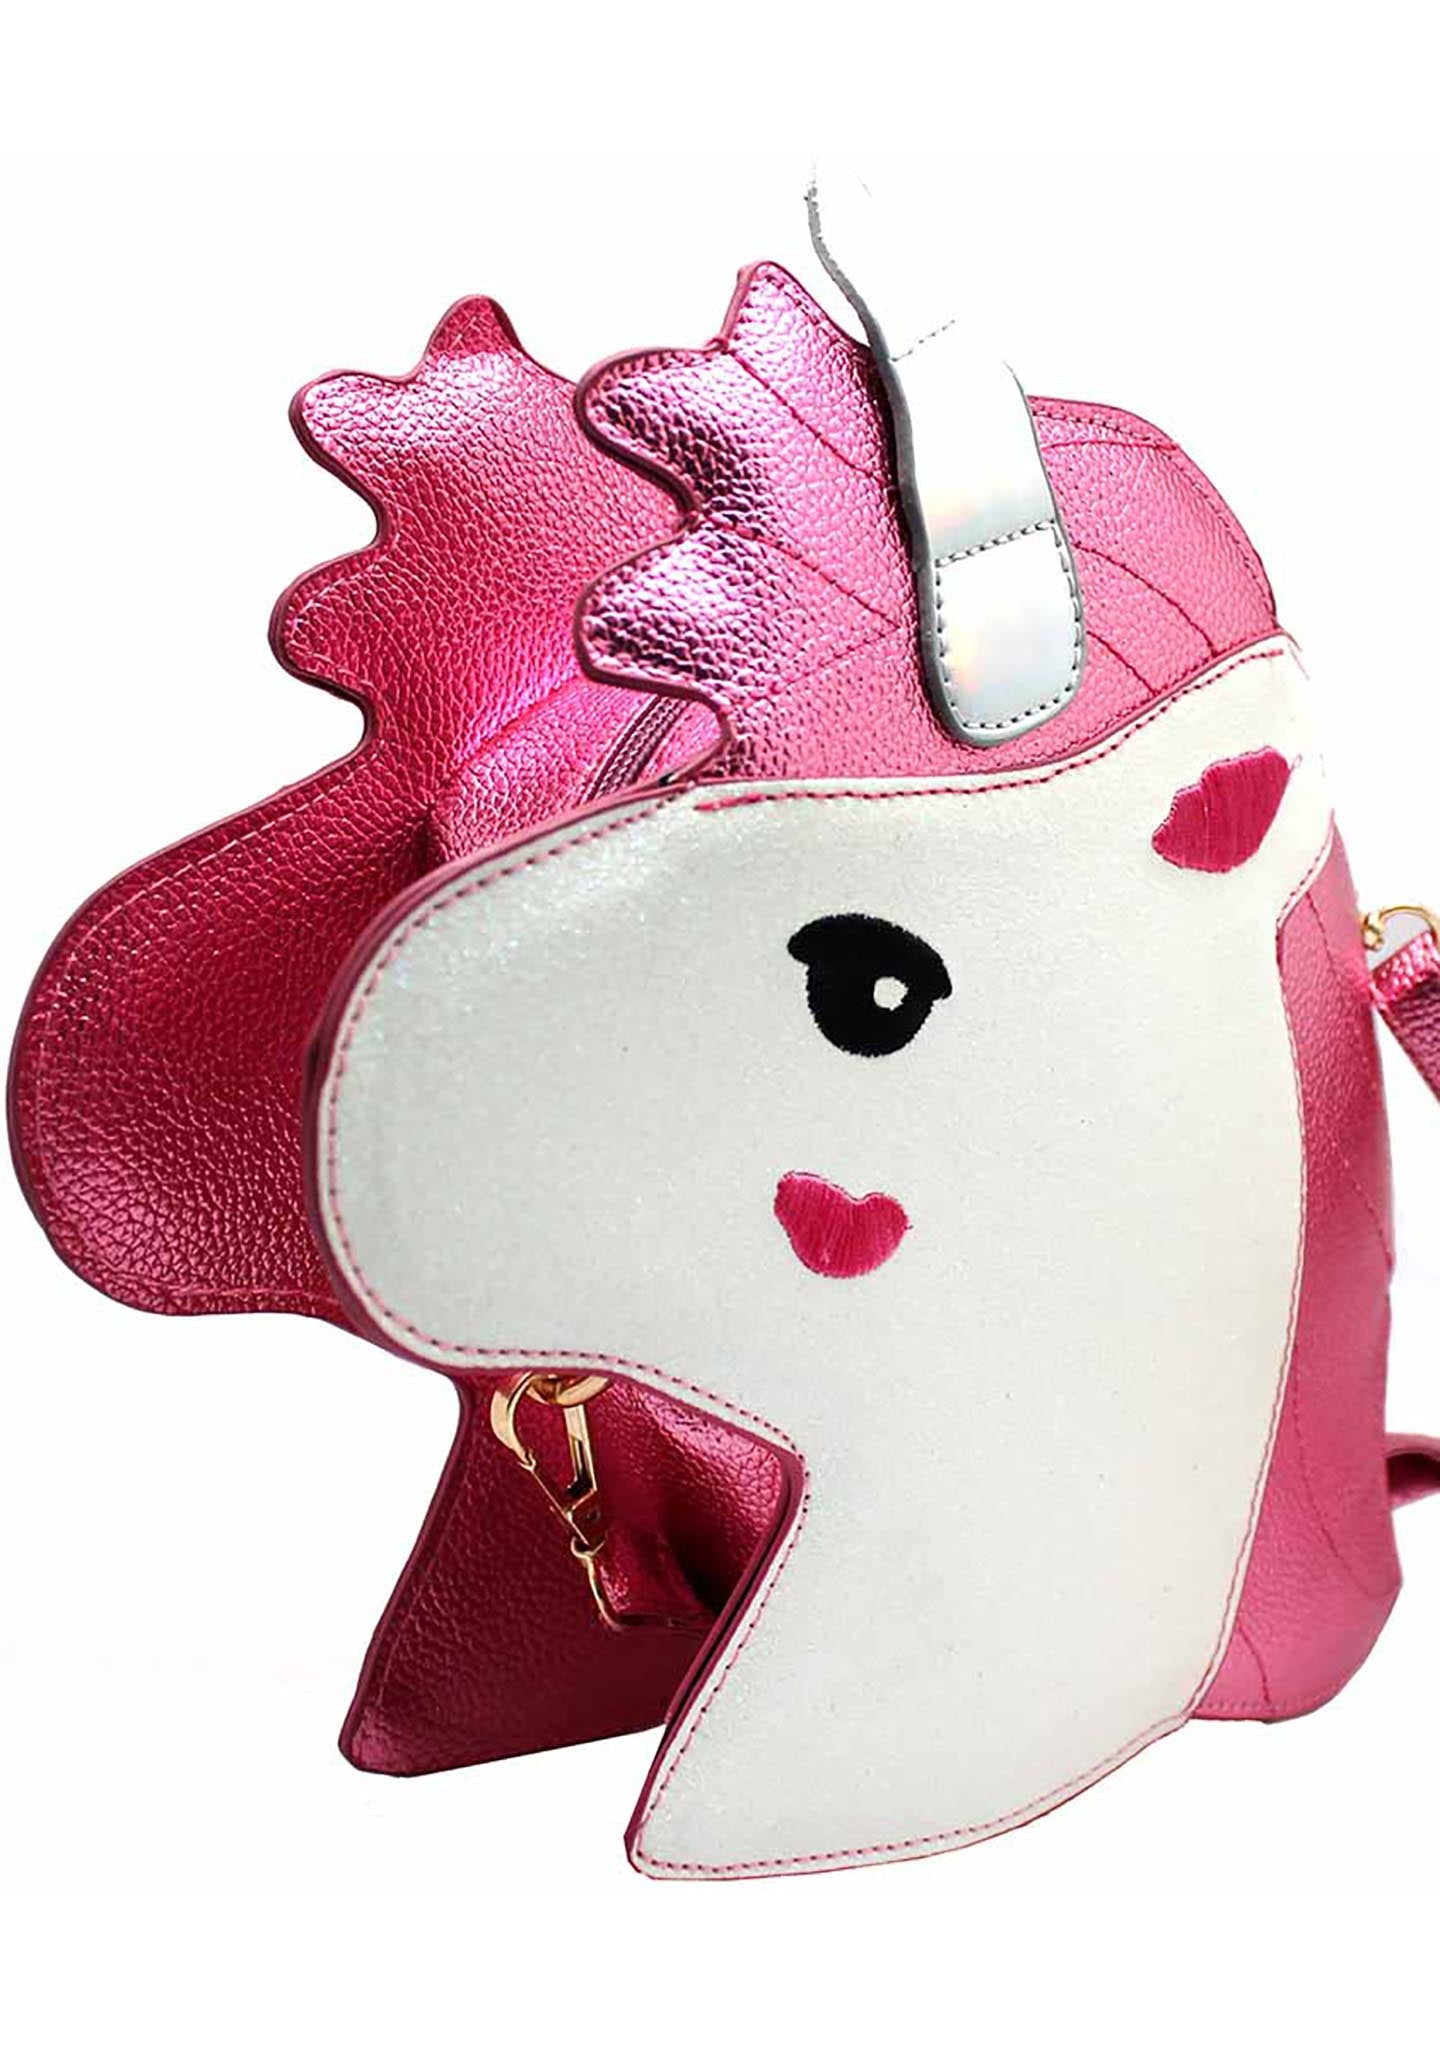 7 LUXE My Little Unicorn Crossbody Bag in Pink